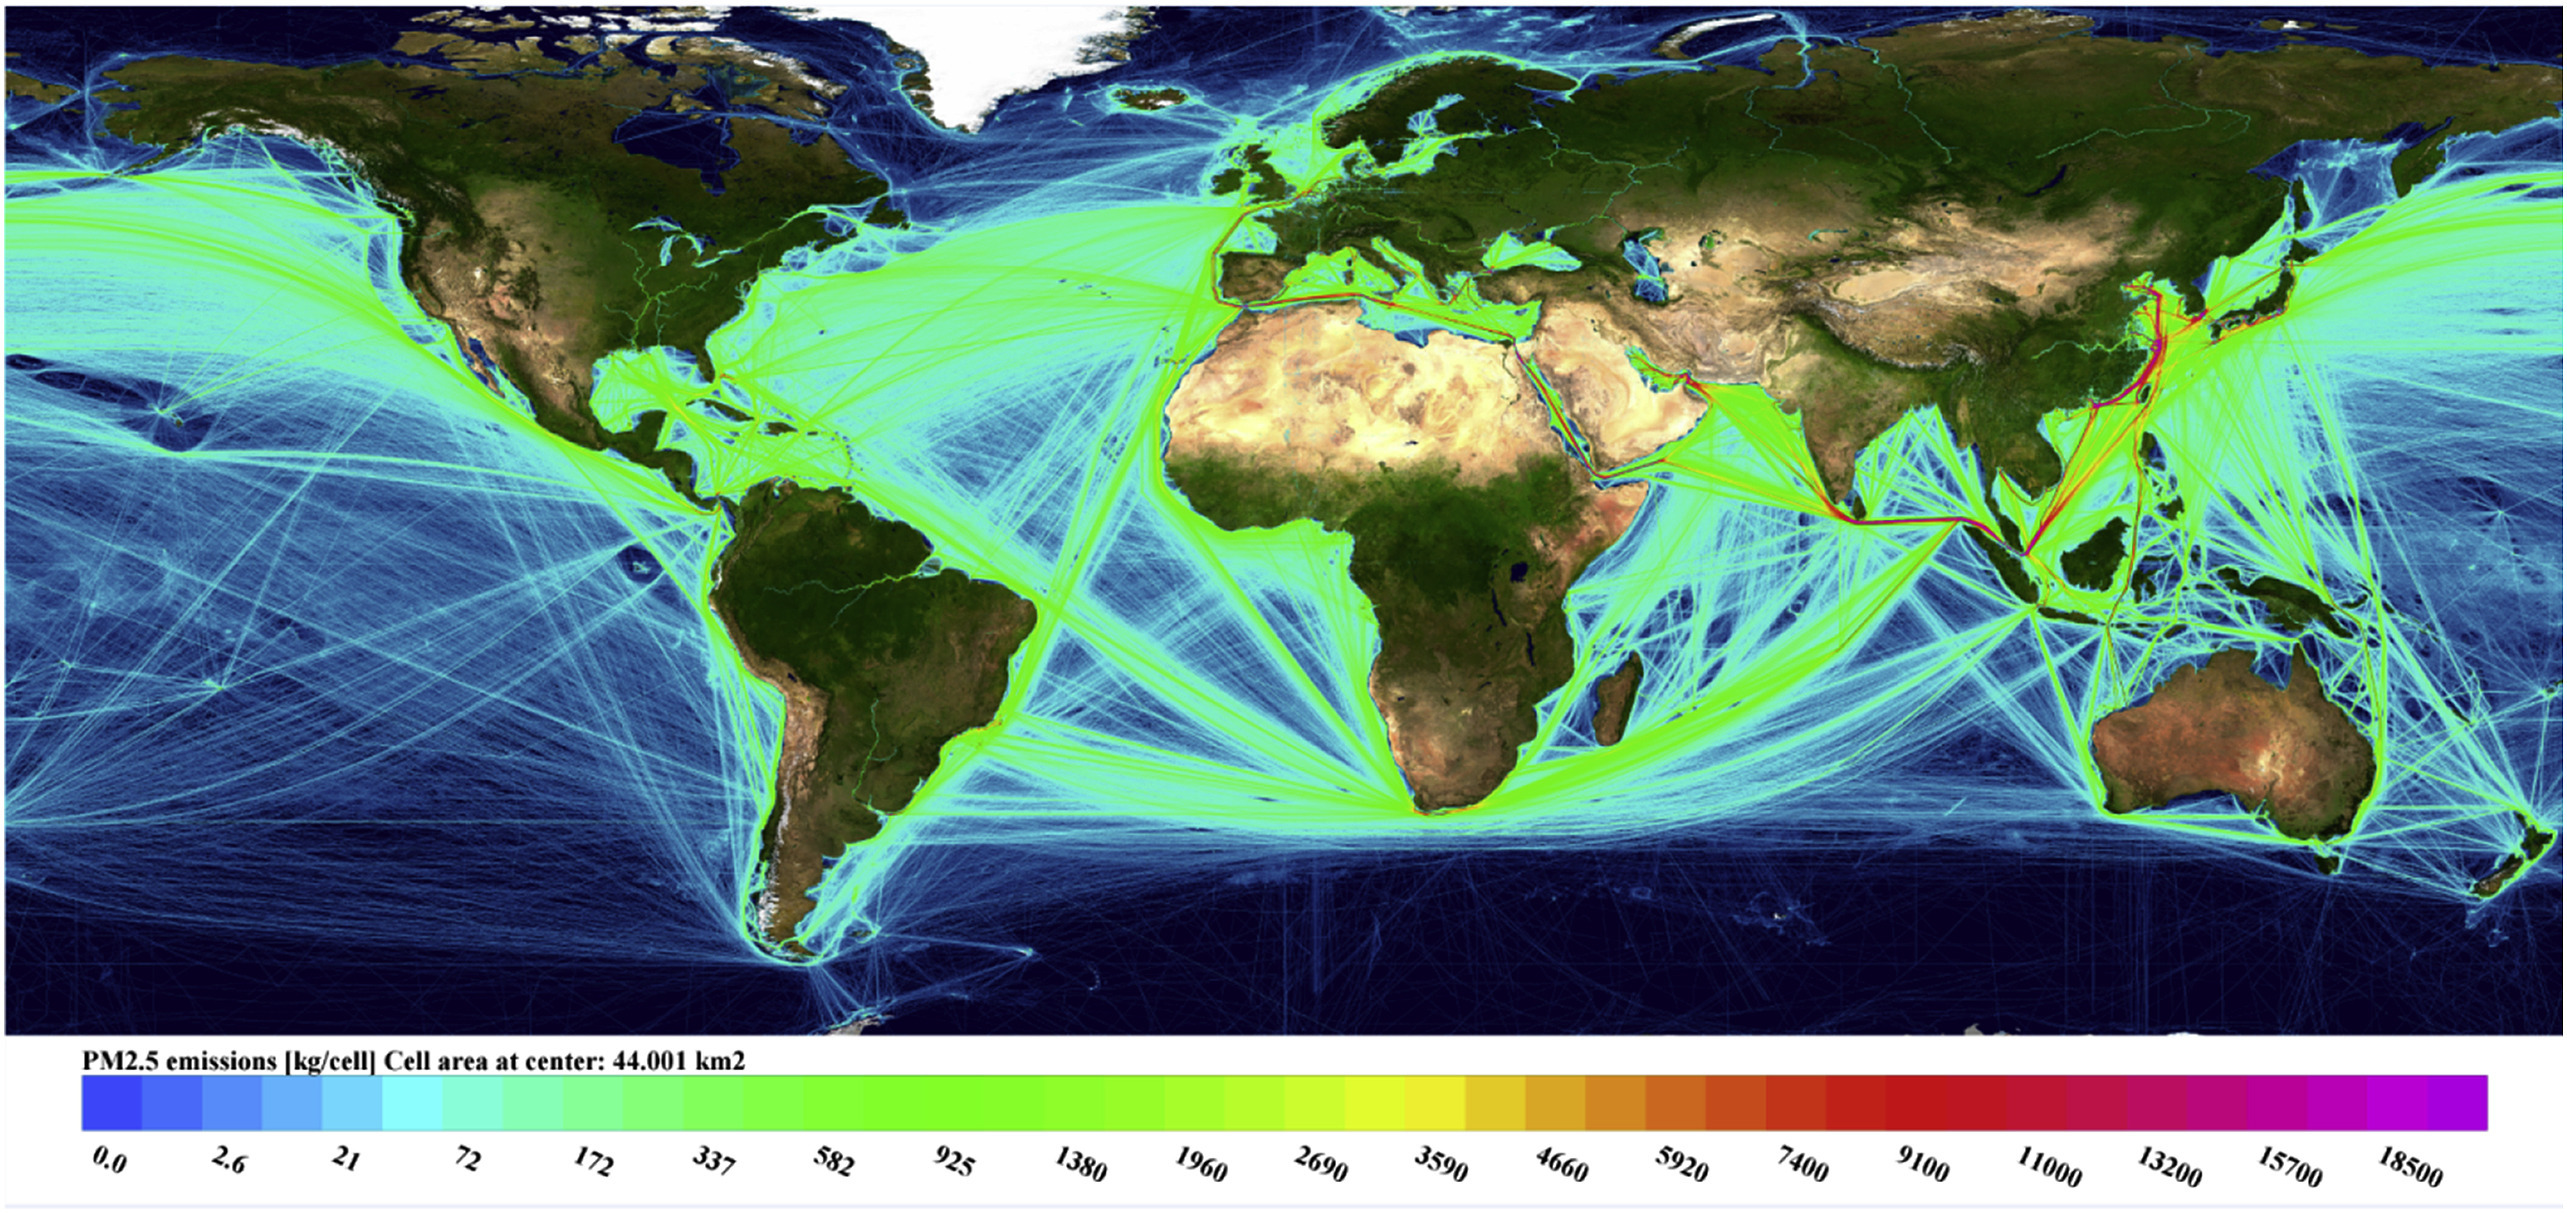 Geographical distribution of the modelled total PM2.5 emissions from shipping in 2015.